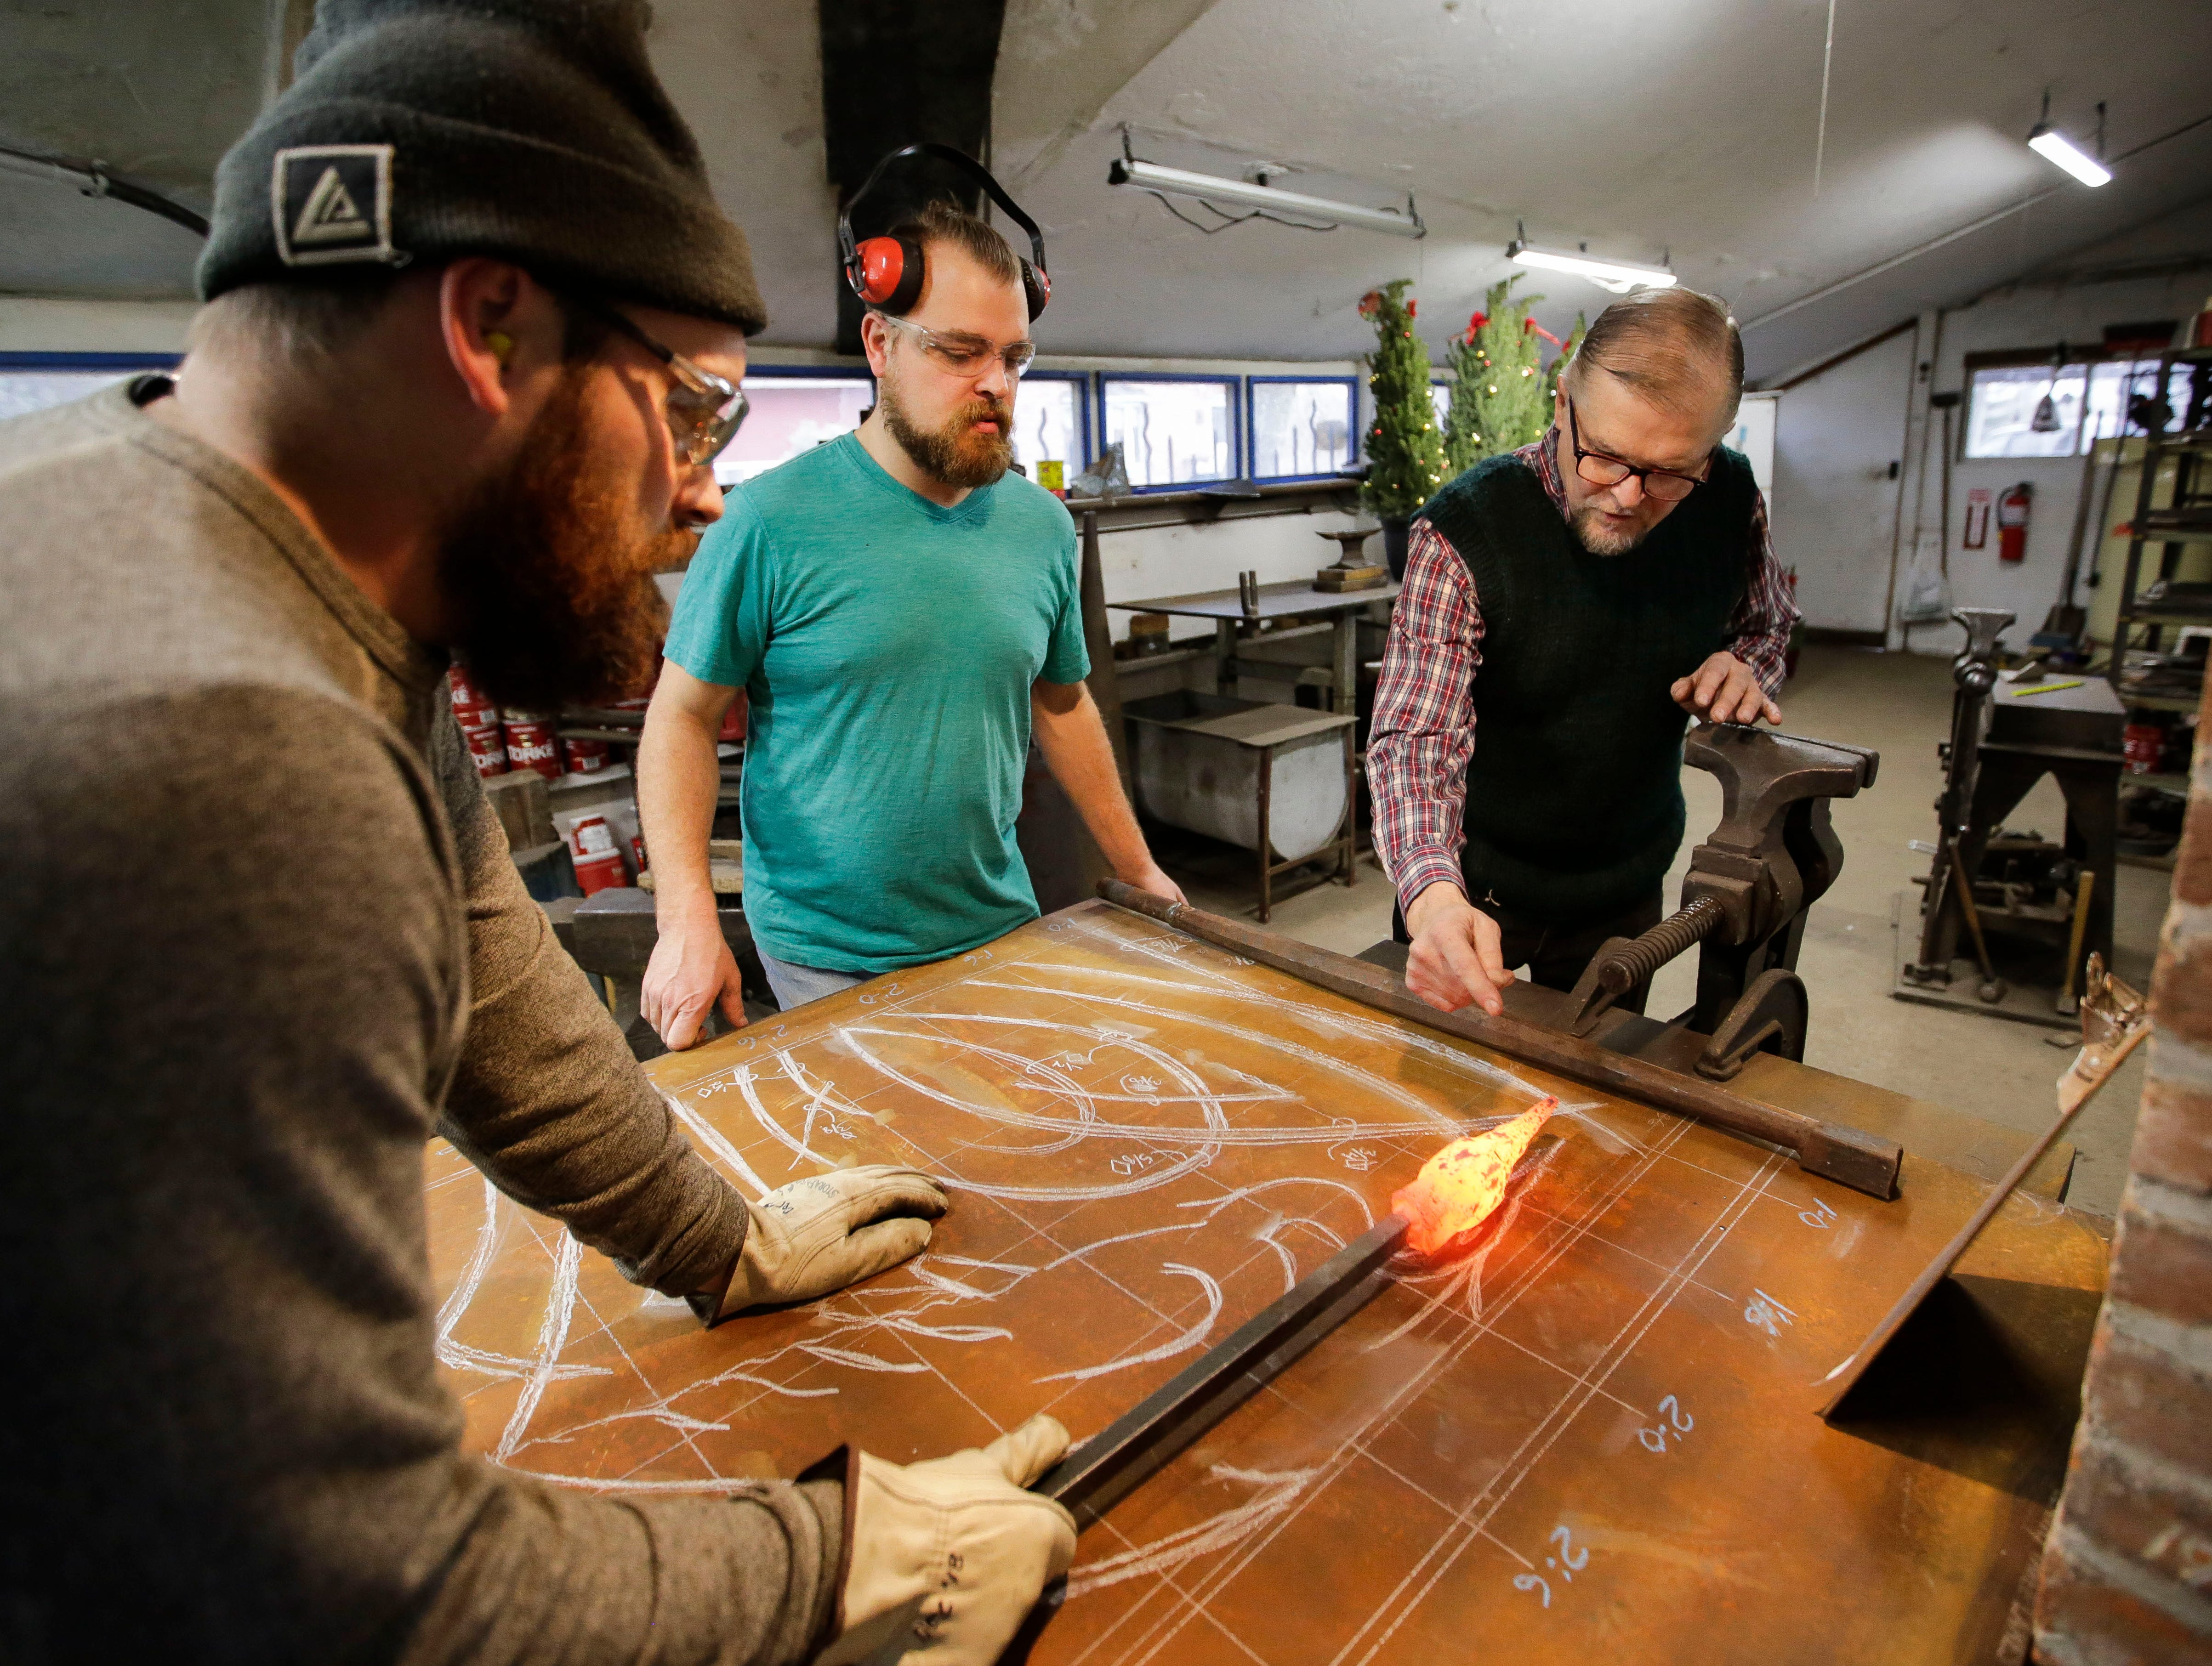 August Kochanowski, Vincent Kochanowski and Boleslaw Kochanowski compare a piece of worked metal to a design sketch on Tuesday, December 25, 2018, at their workshop in Junction City, Wis.